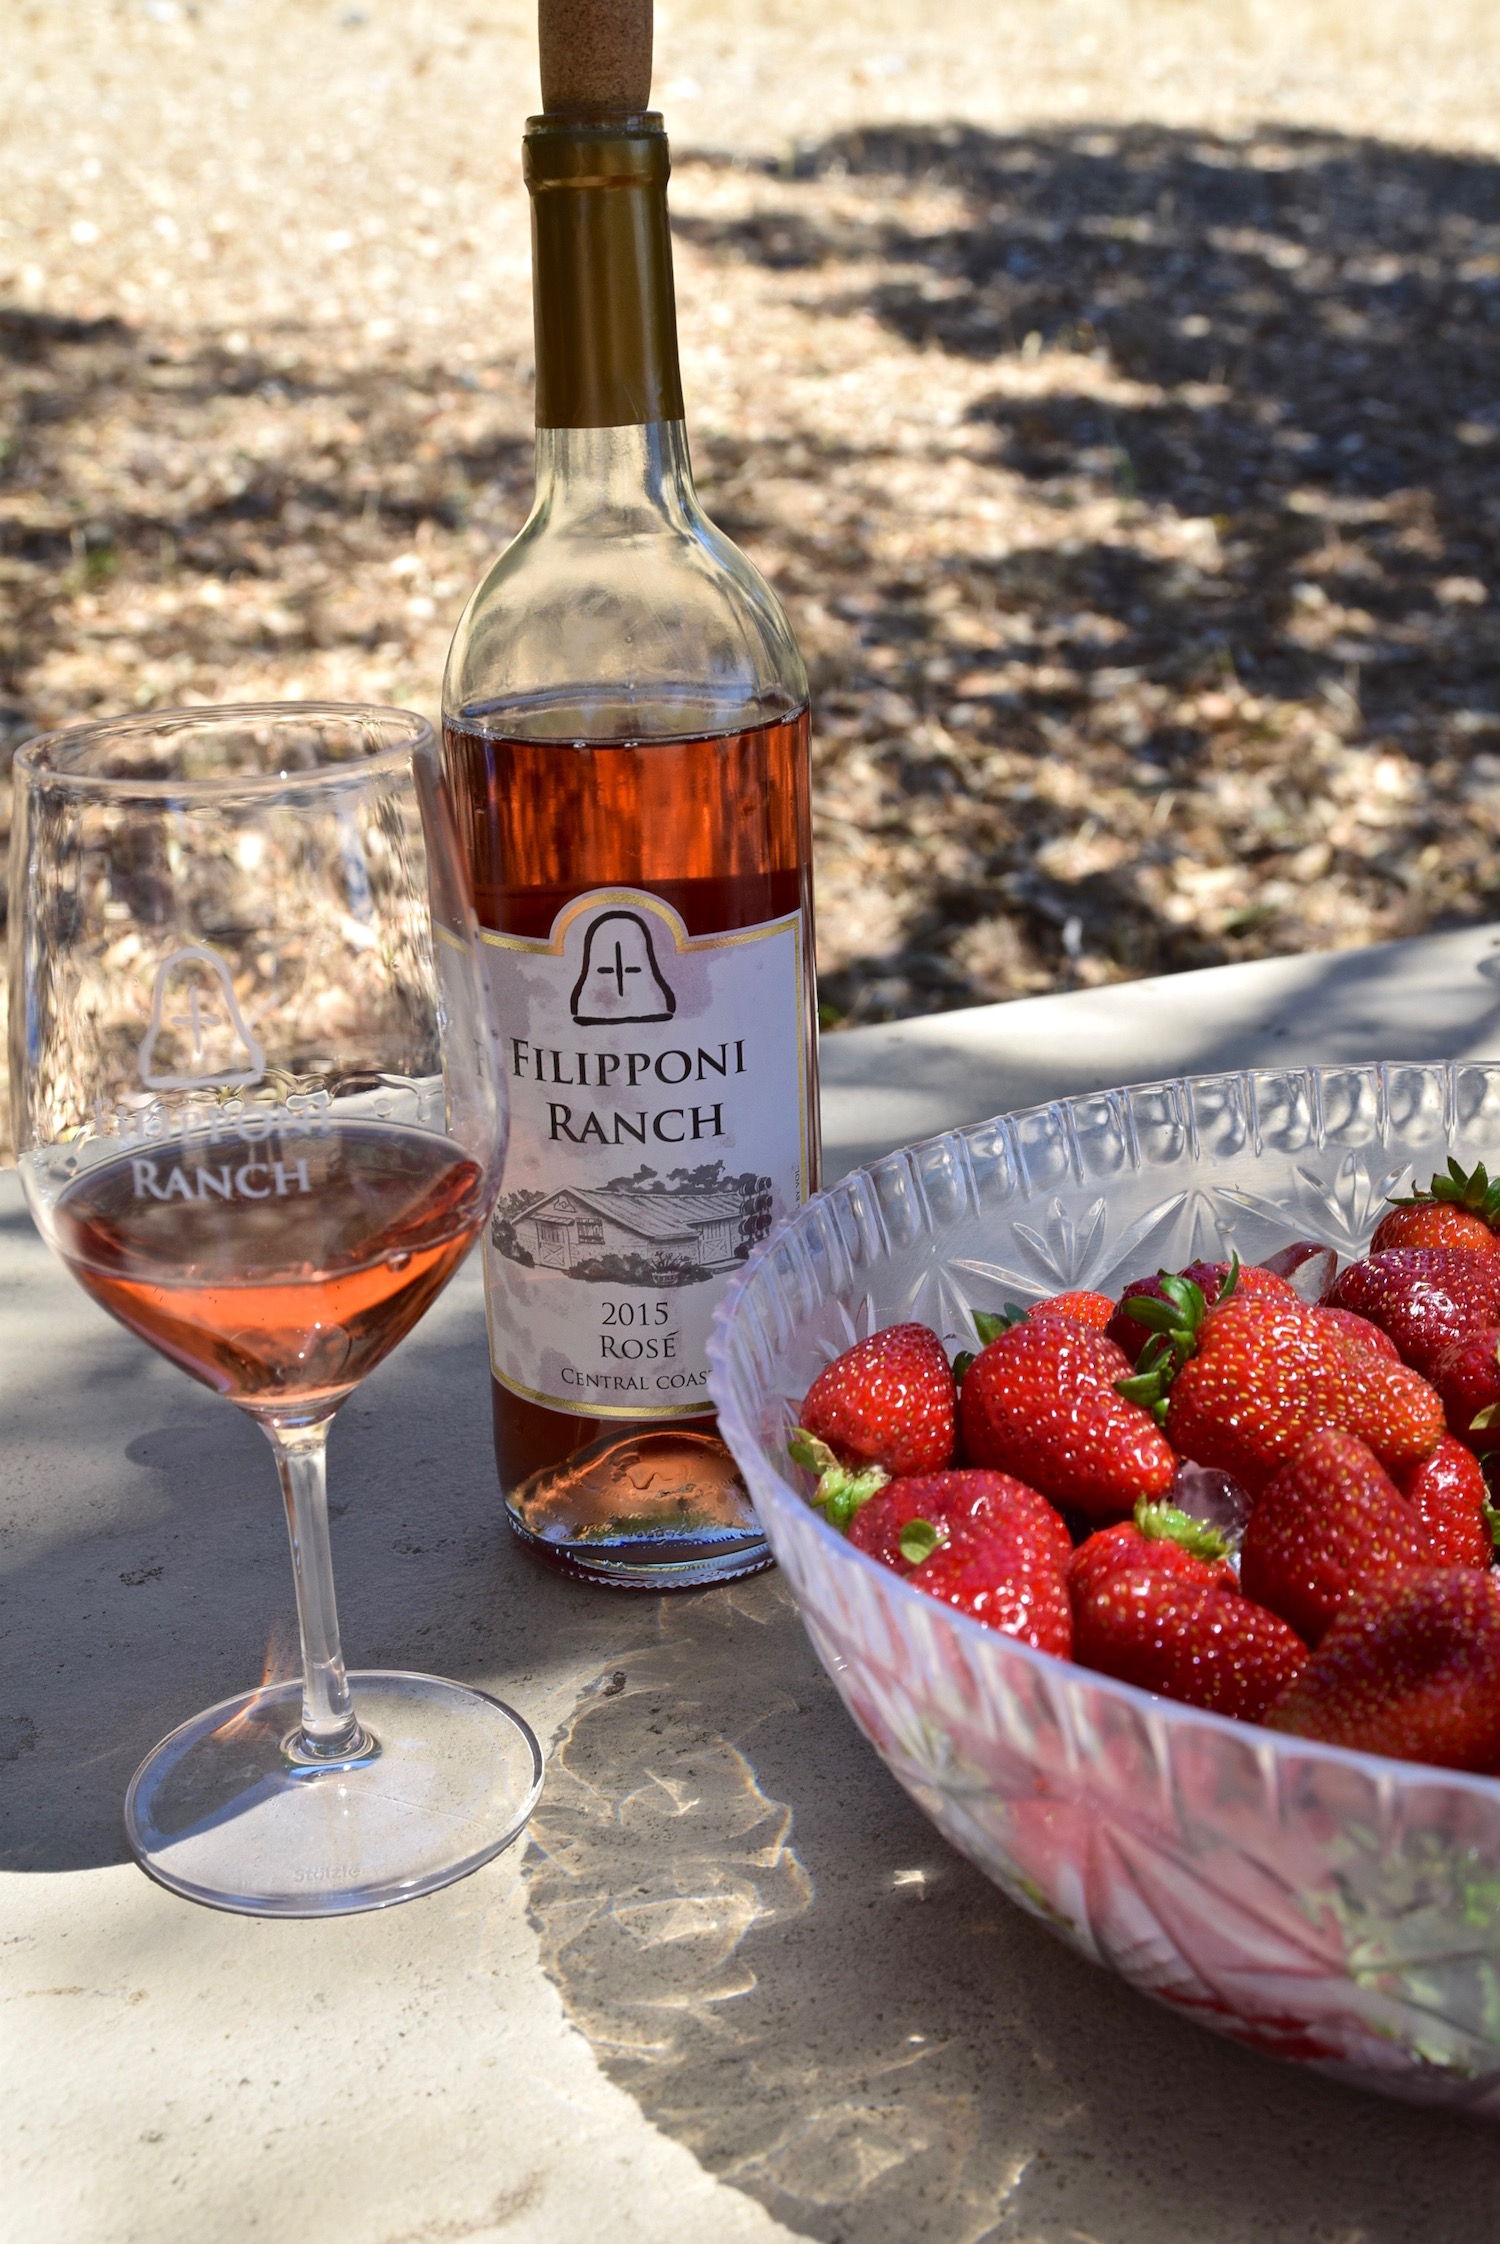 Filipponi Ranch Rose.jpg